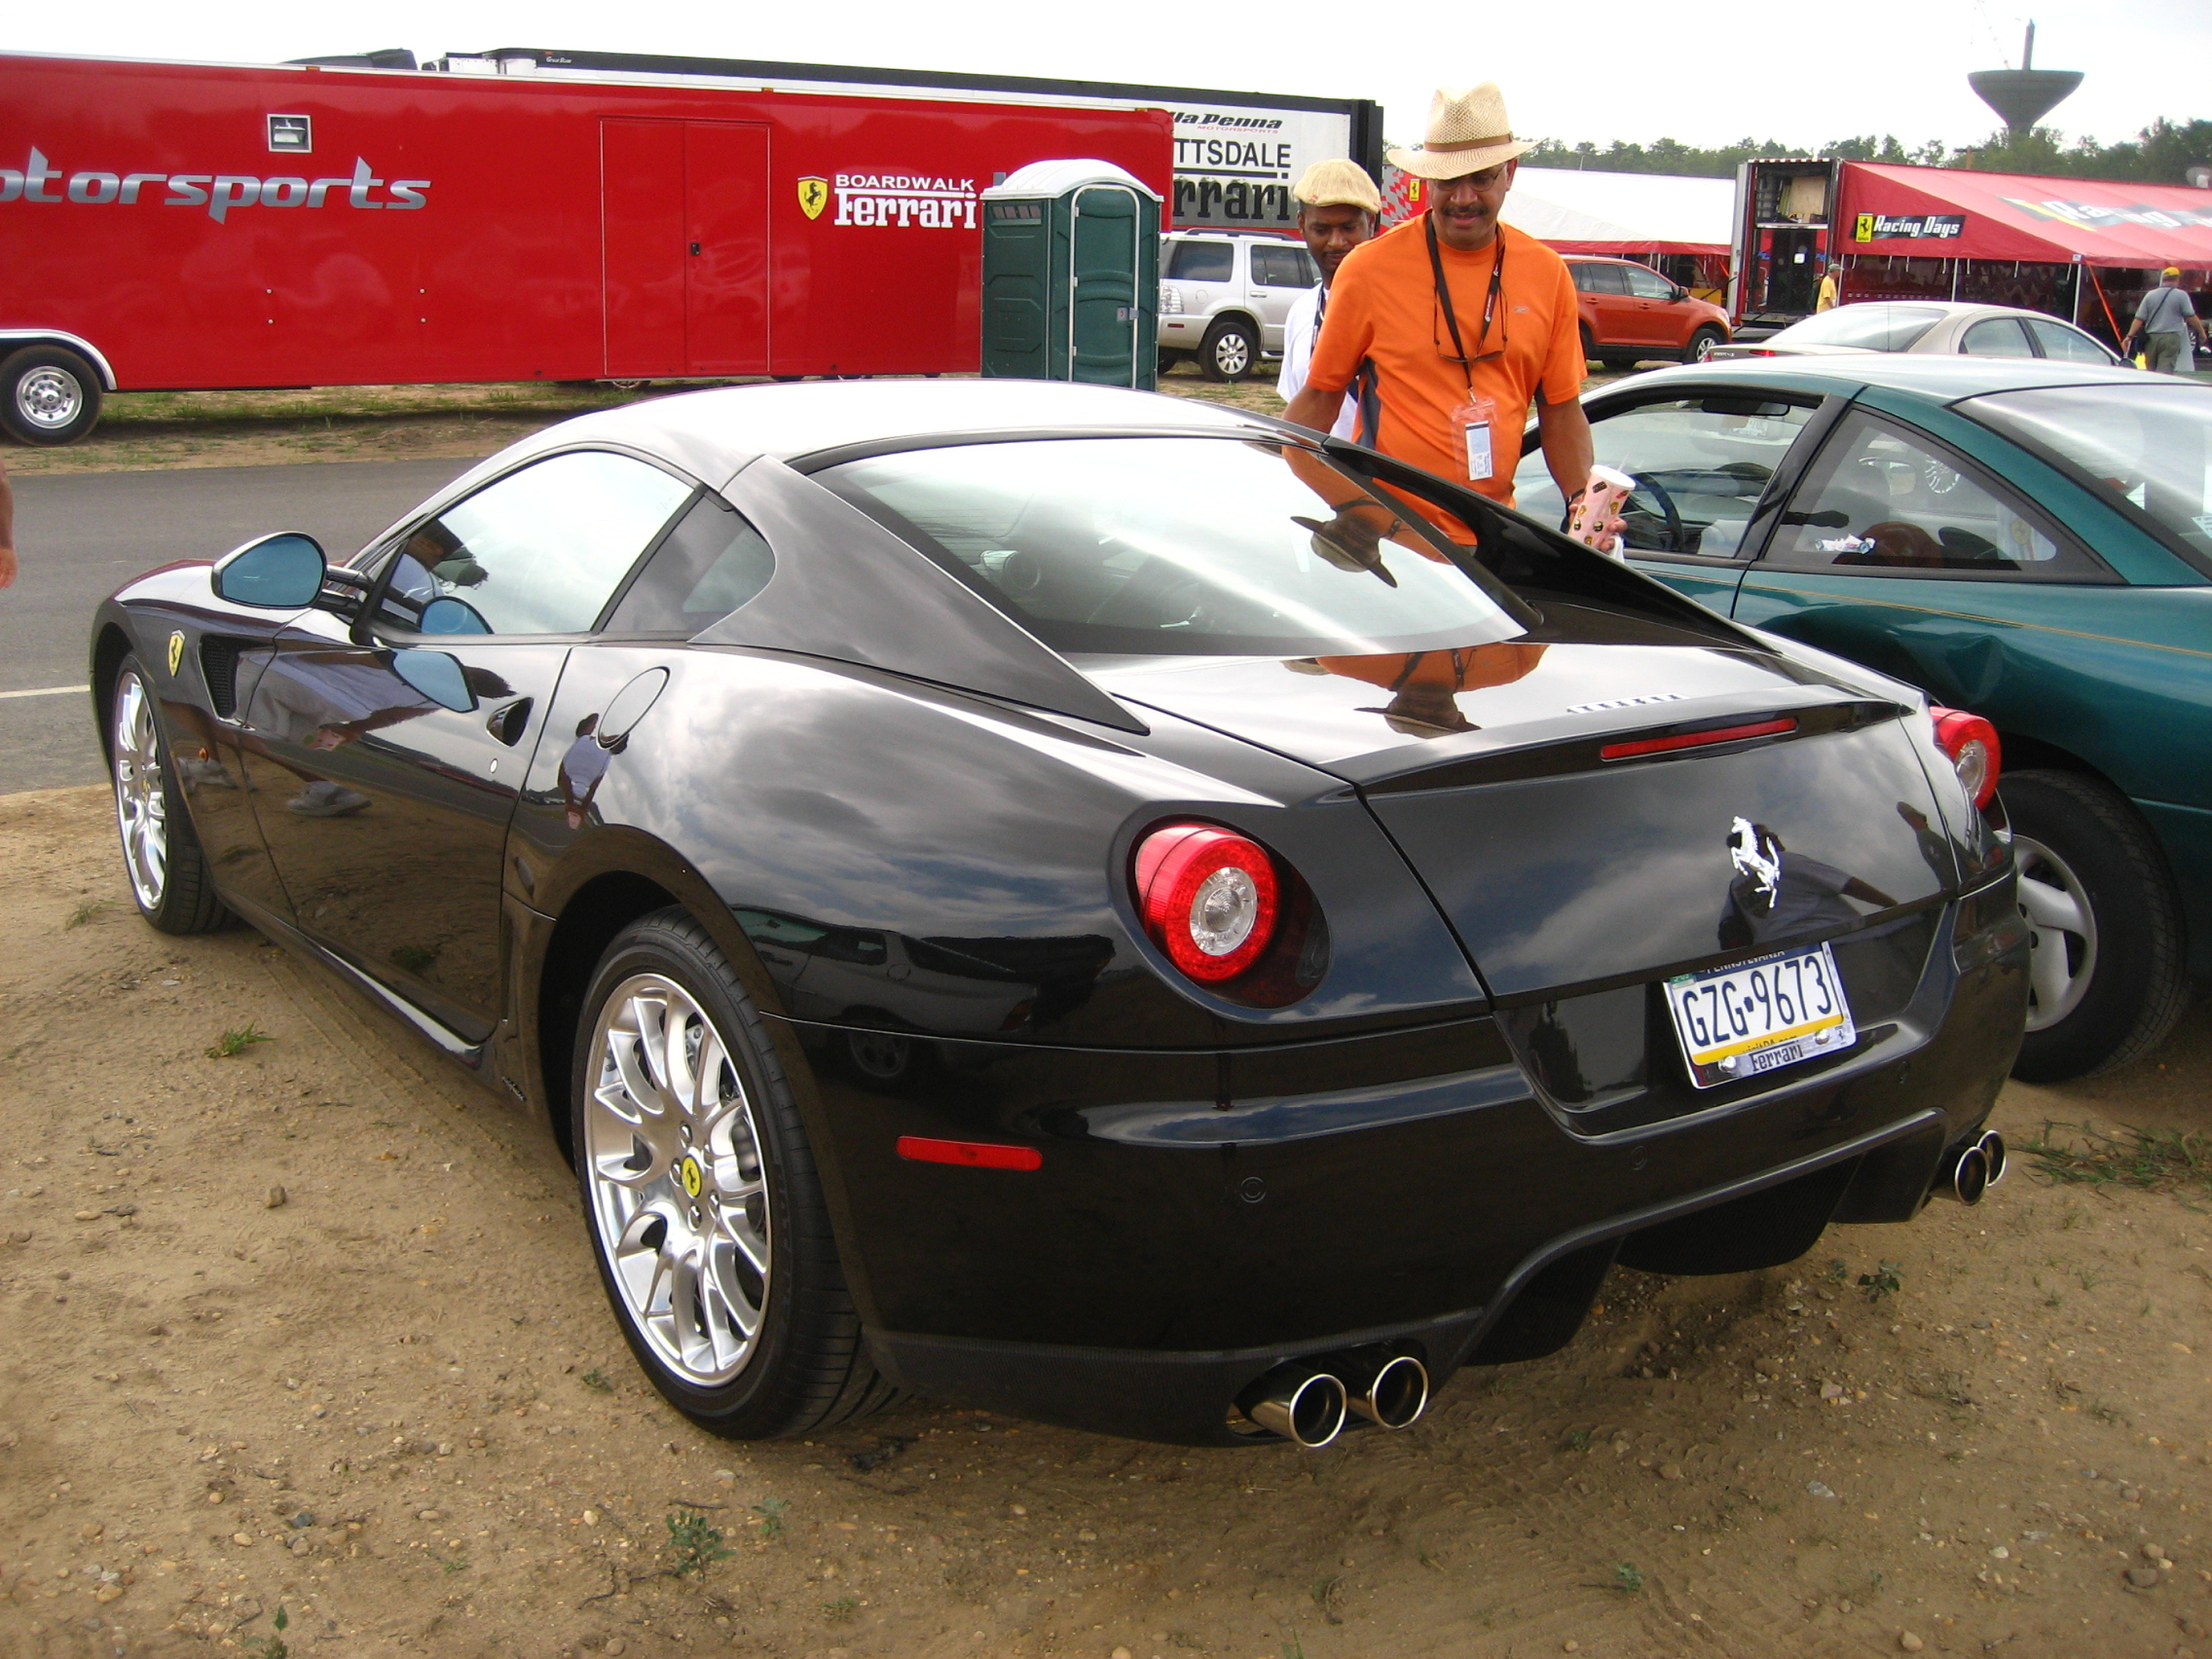 Ordinaire File:Ferrari 599 GTB Rear.JPG